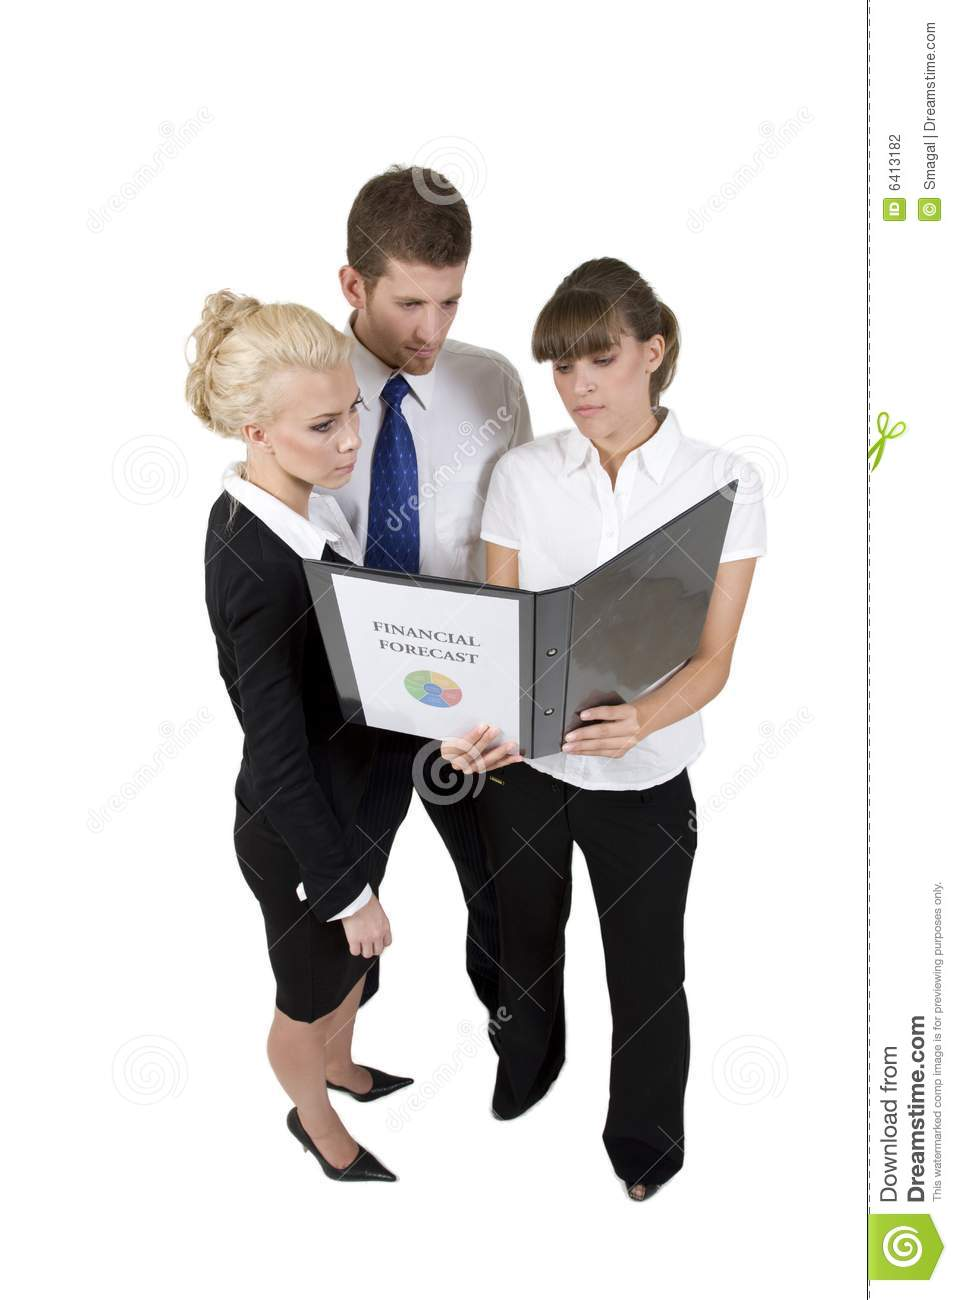 Business People Discuss Report Stock Photo - Image: 6413182